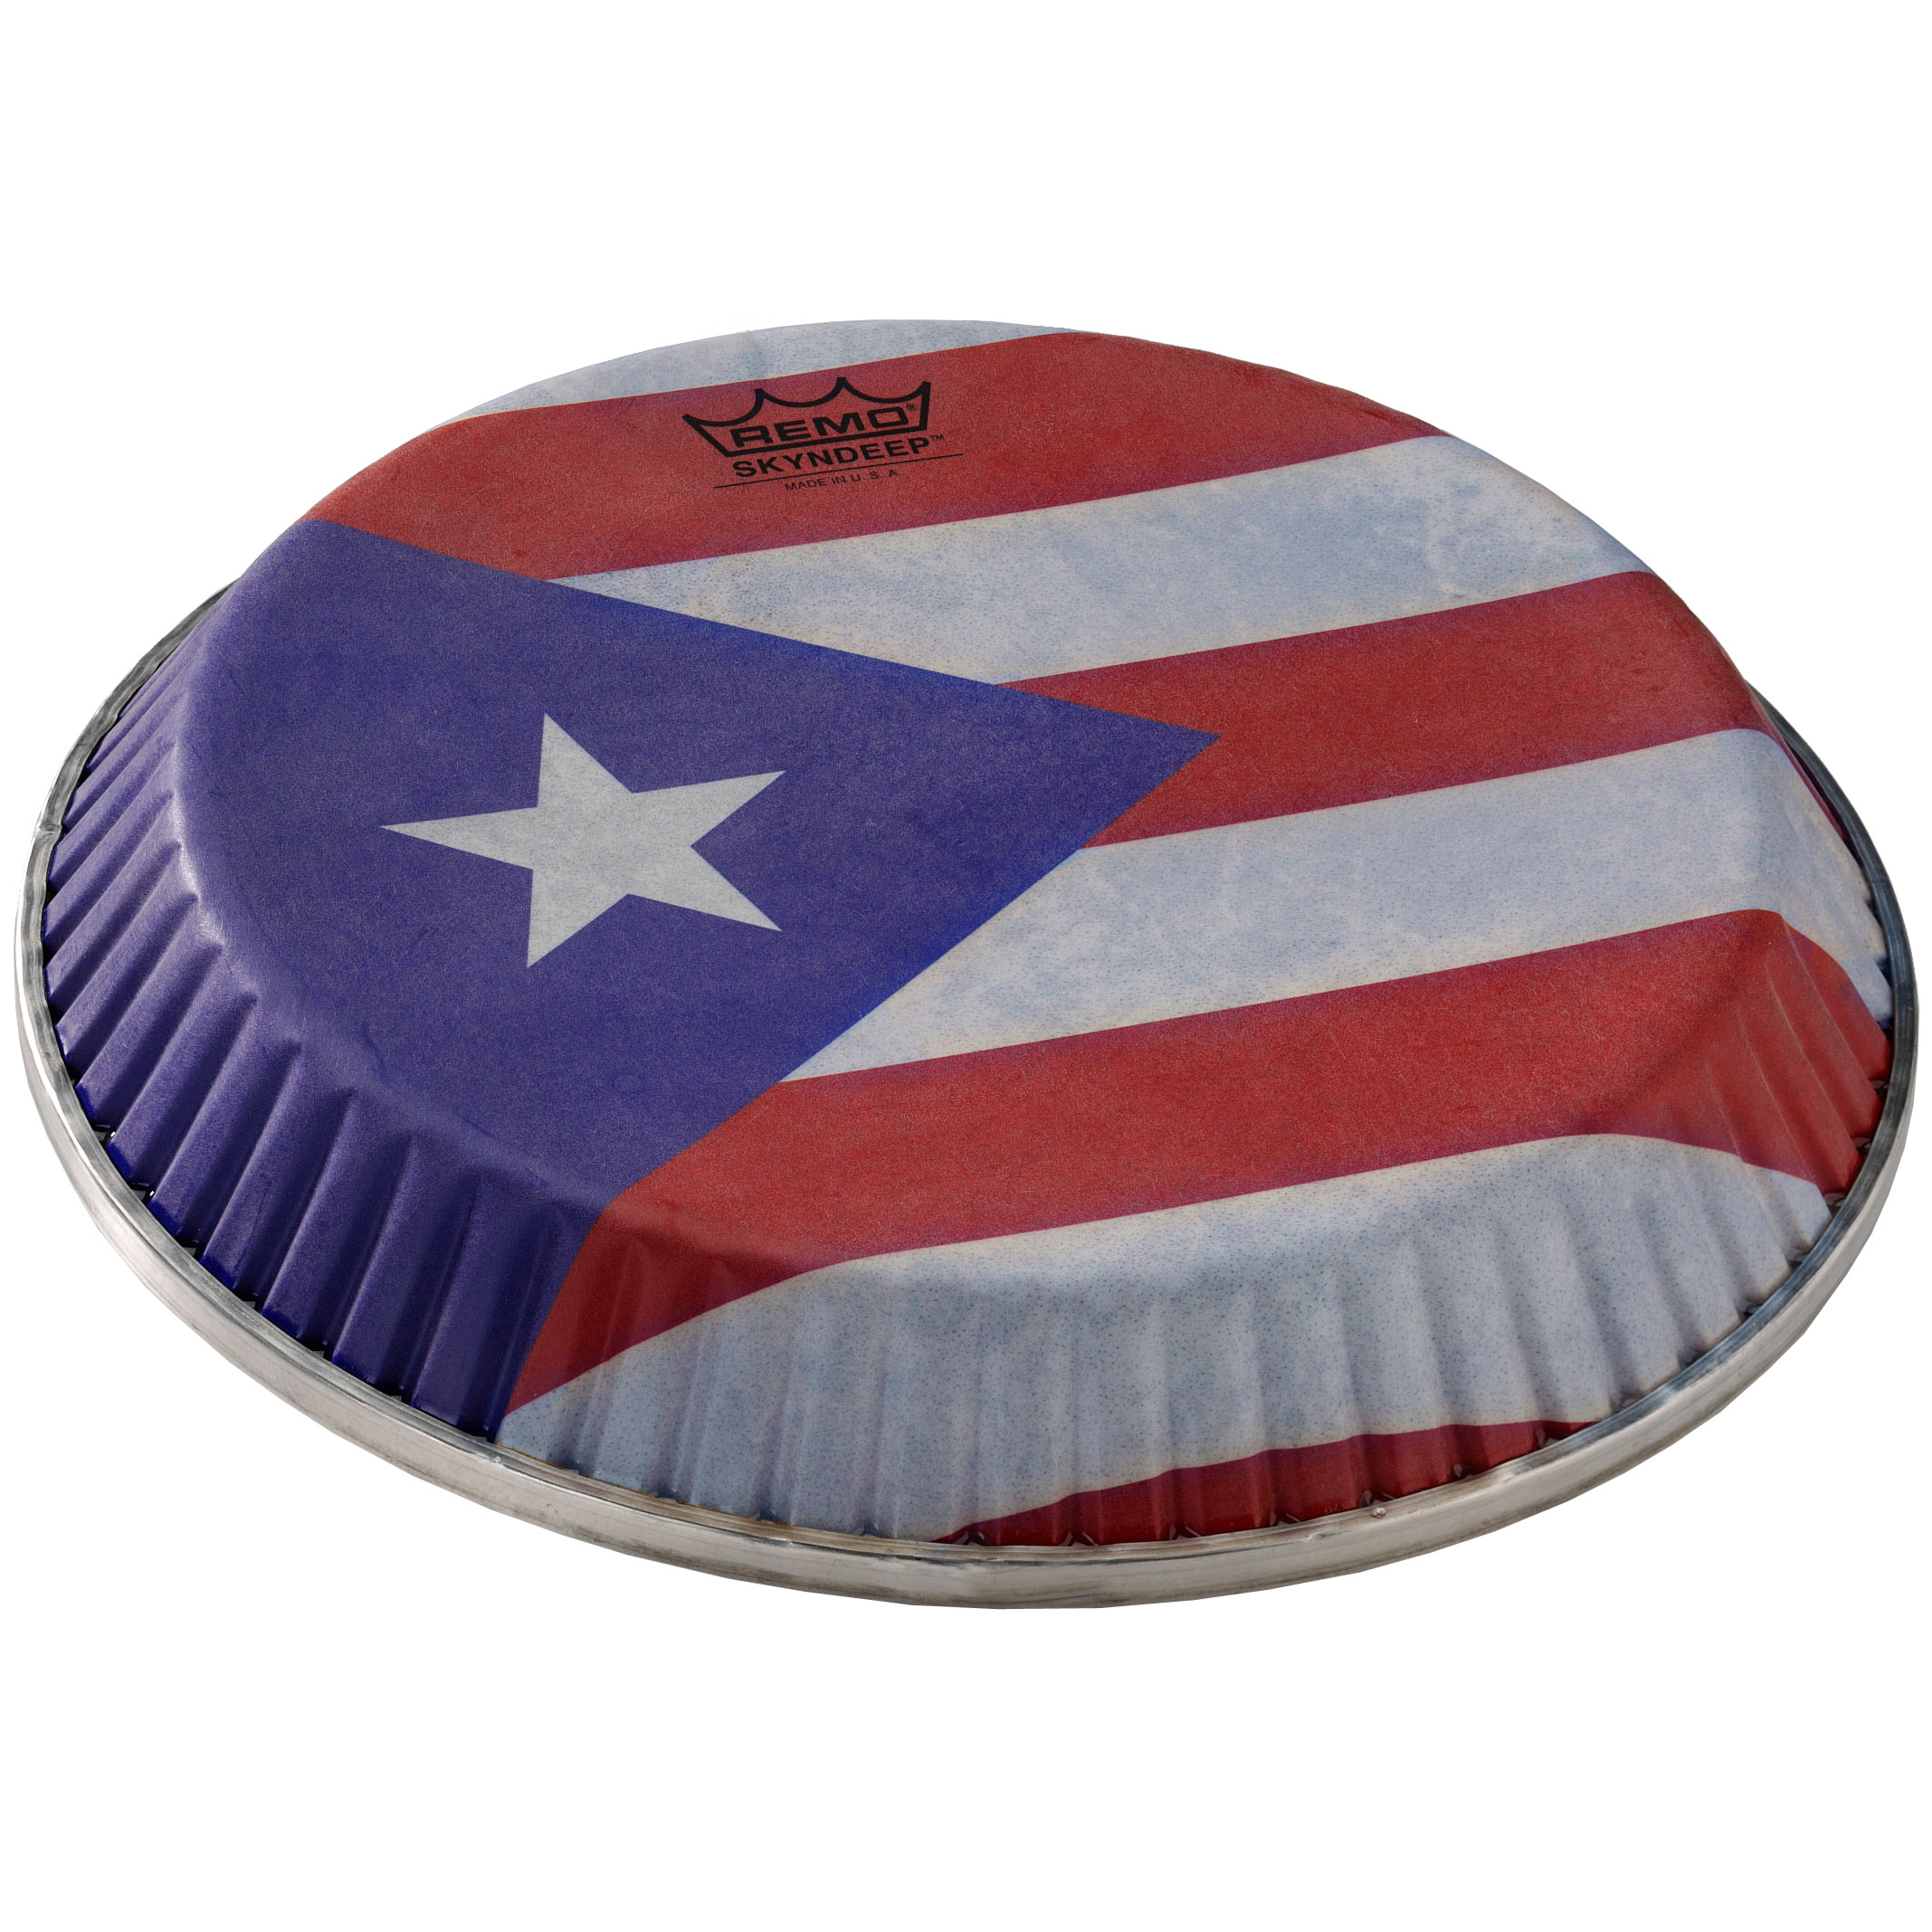 """Remo 12.5"""" Symmetry Skyndeep Conga Drum Head (D2 Collar) with Puerto Rican Flag Graphic"""